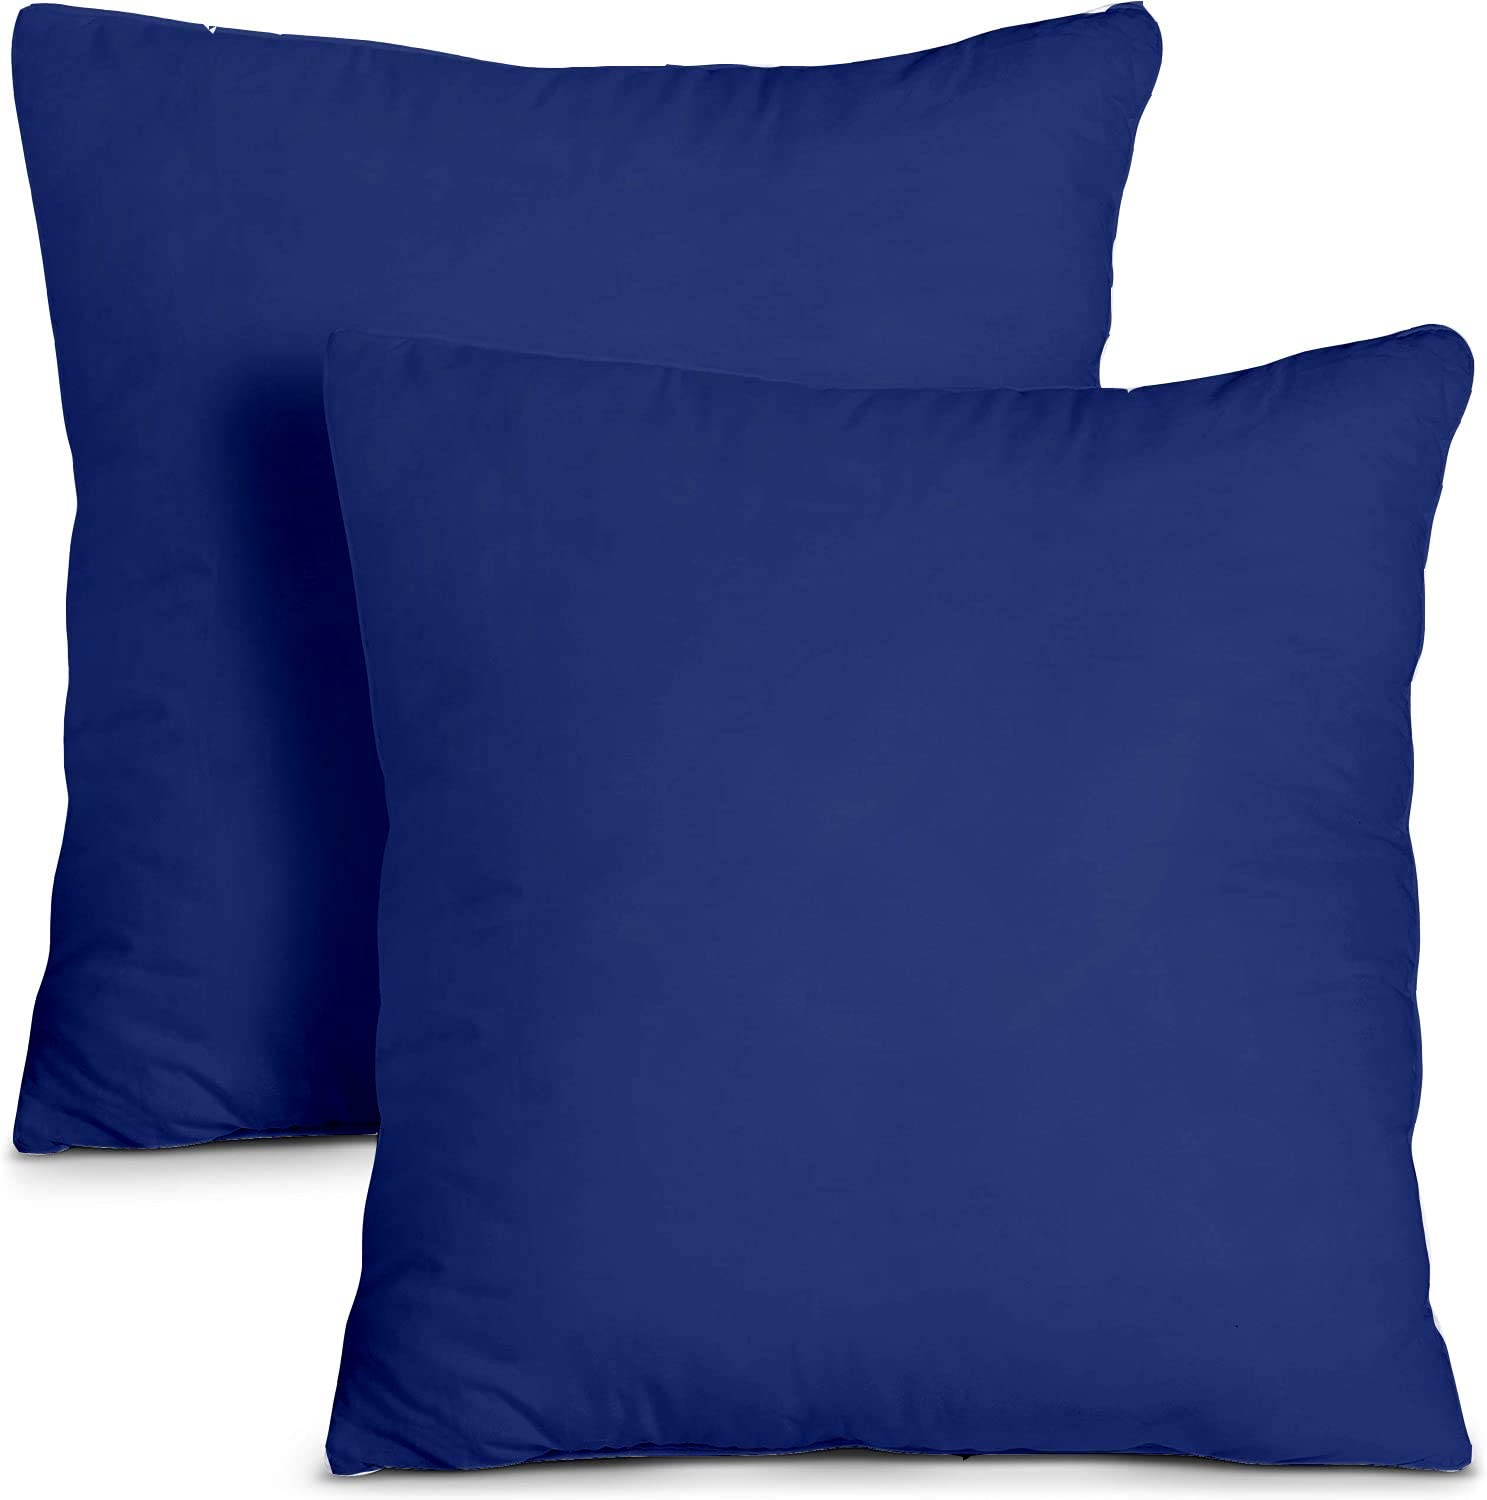 Set of 2 Black United Homes Luxurious 1000 Thread Count Pillow Cover with Zipper Closer, Baby Sized 12 by 16 inch Pillow Sham 100/% Cotton